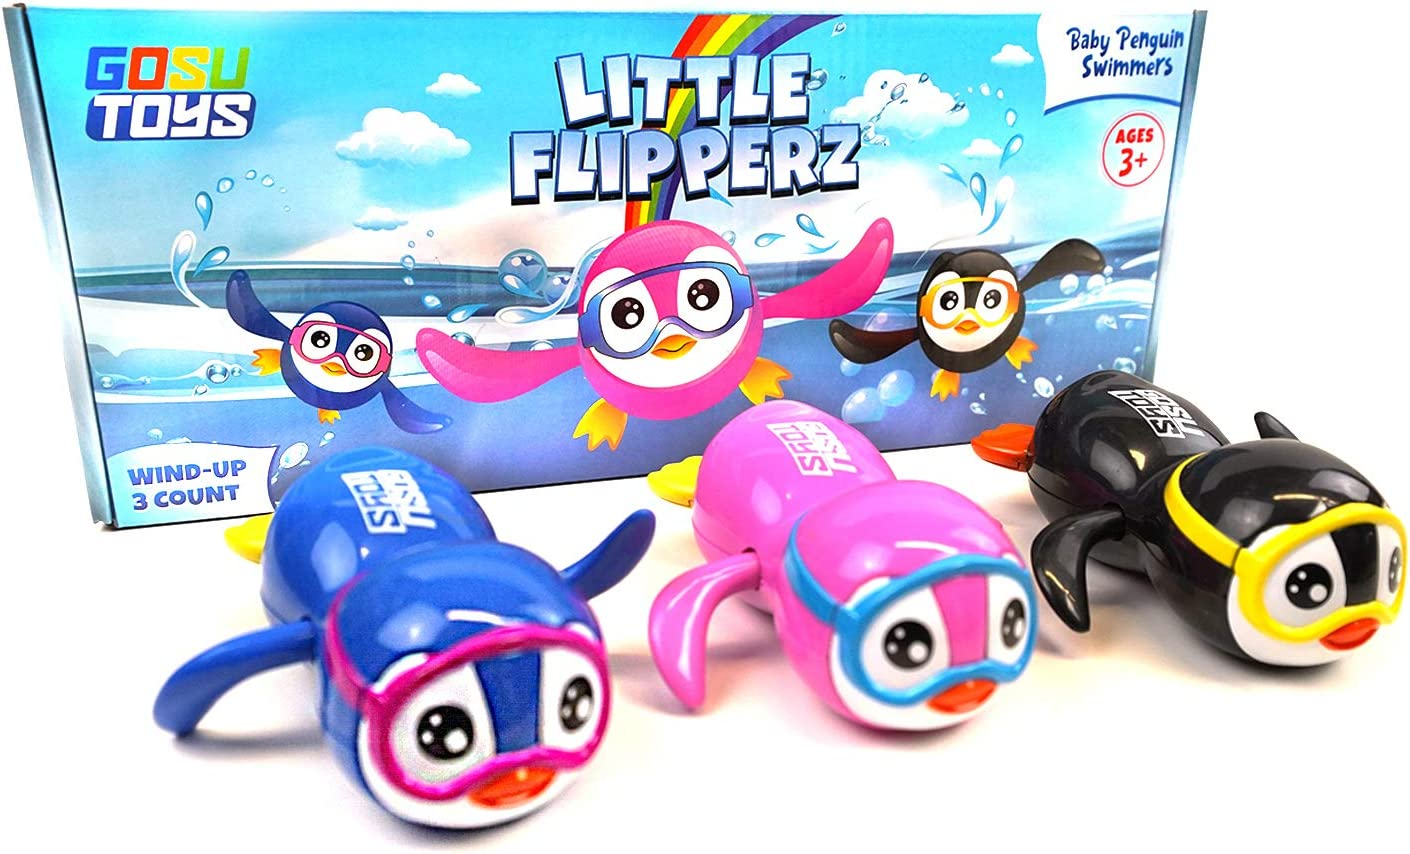 Black Pink Blue 3 Pack Gosu Toys Little Flipperz Wind Up Baby Penguin Swimmers